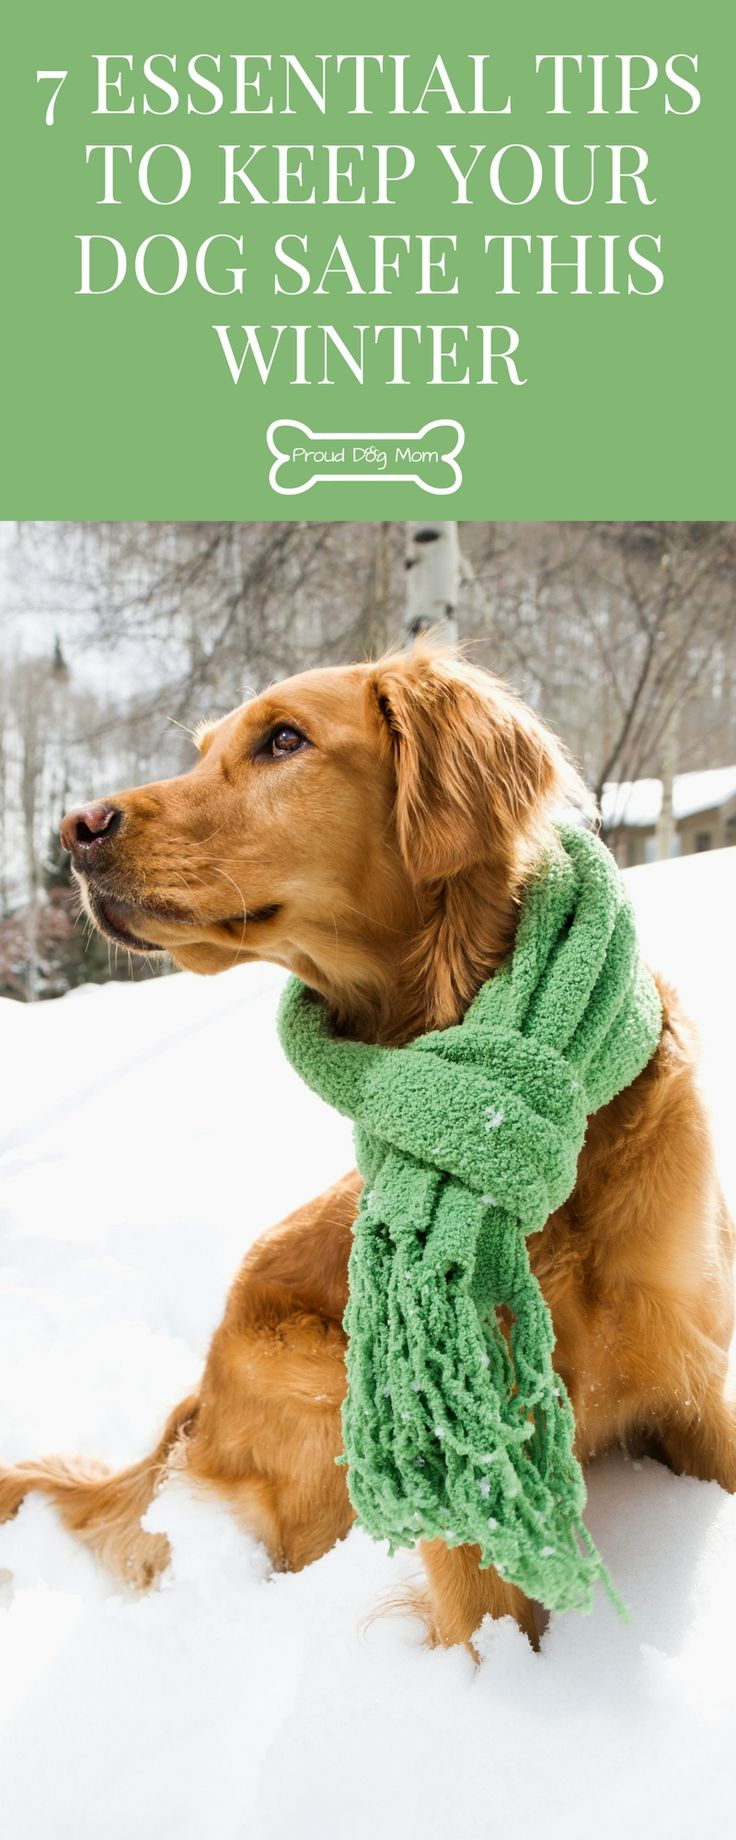 7 Essential Tips to Keep Your Dog Safe This Winter | Dog Health |